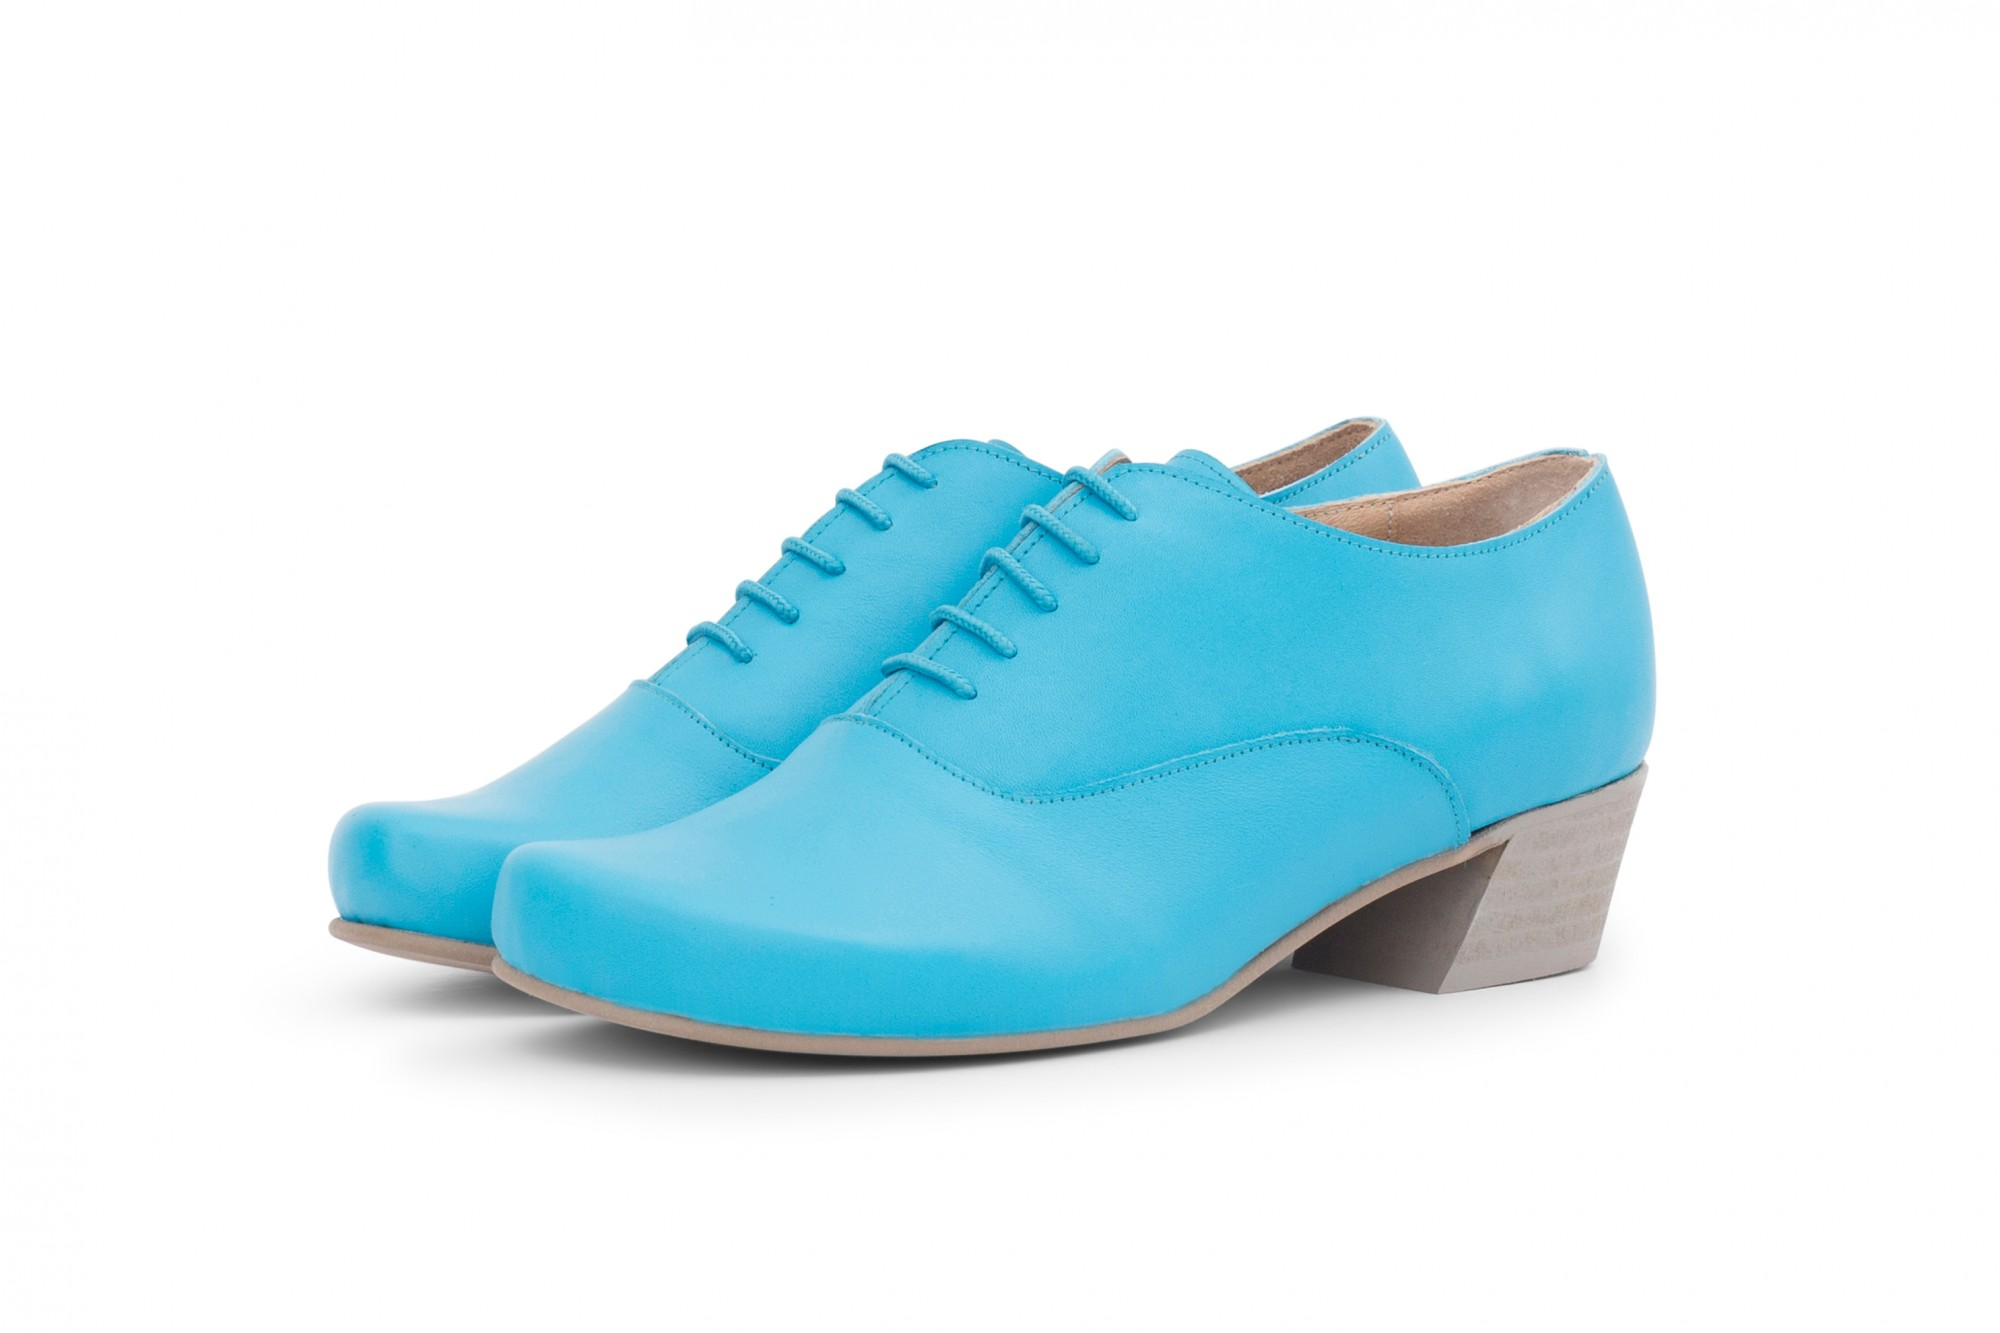 225e047e62a Light blue women's shoes. Handmade women's lace up shoes in light blue  leather ...